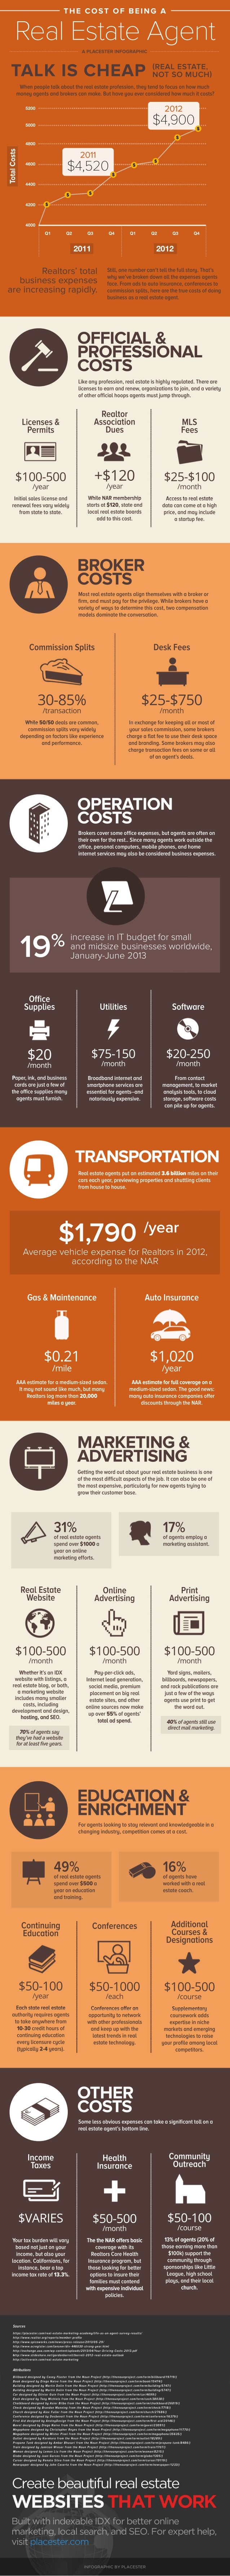 The Cost of Being a Real Estate Agent [Infographic]